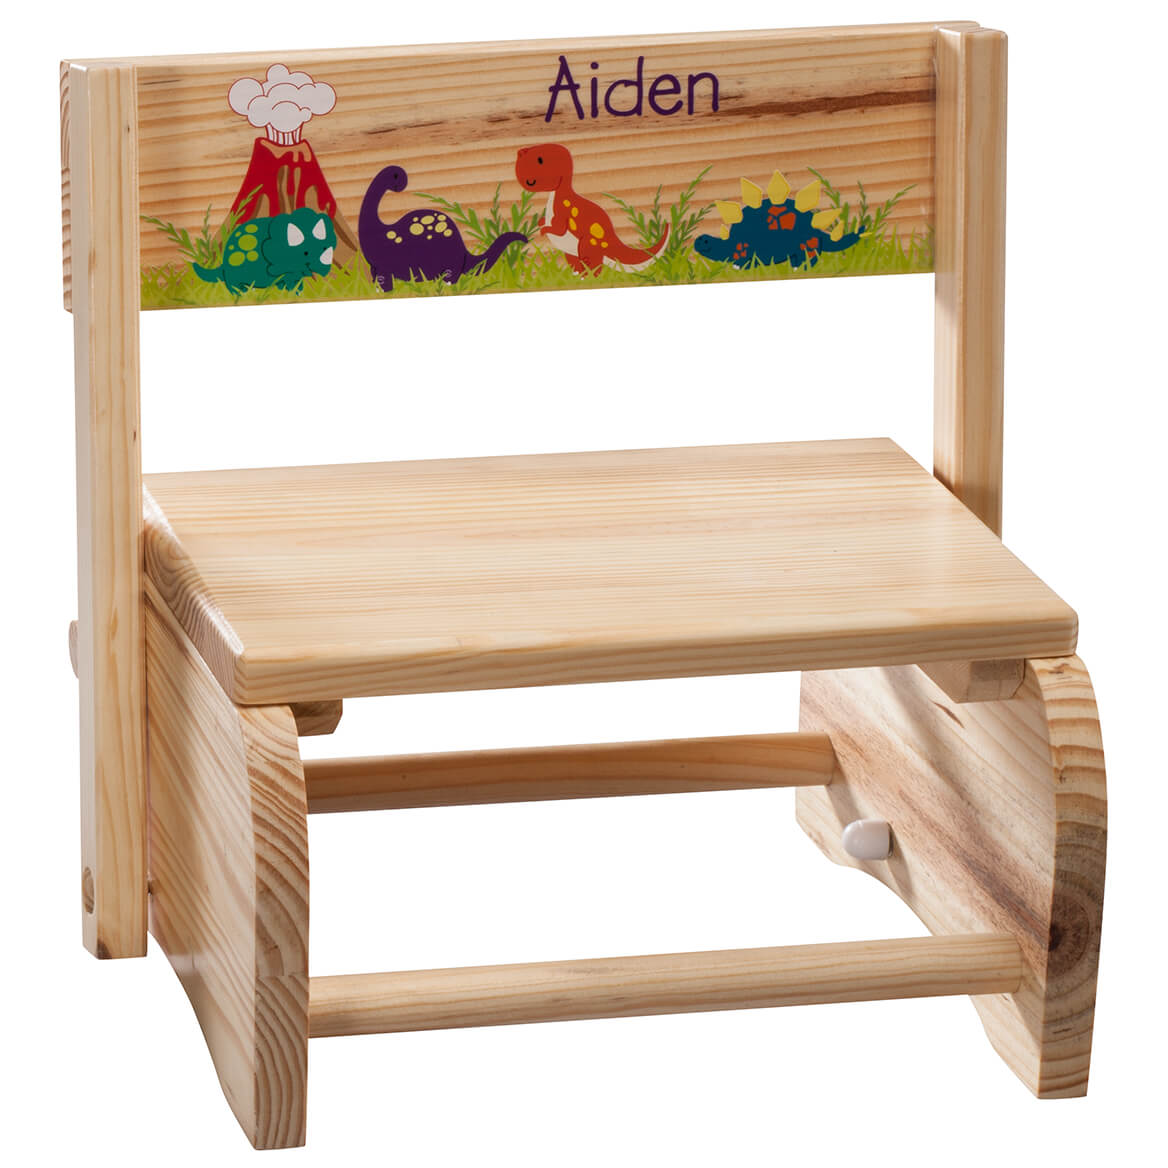 Personalized Children's Dinosaur Step Stool-365672